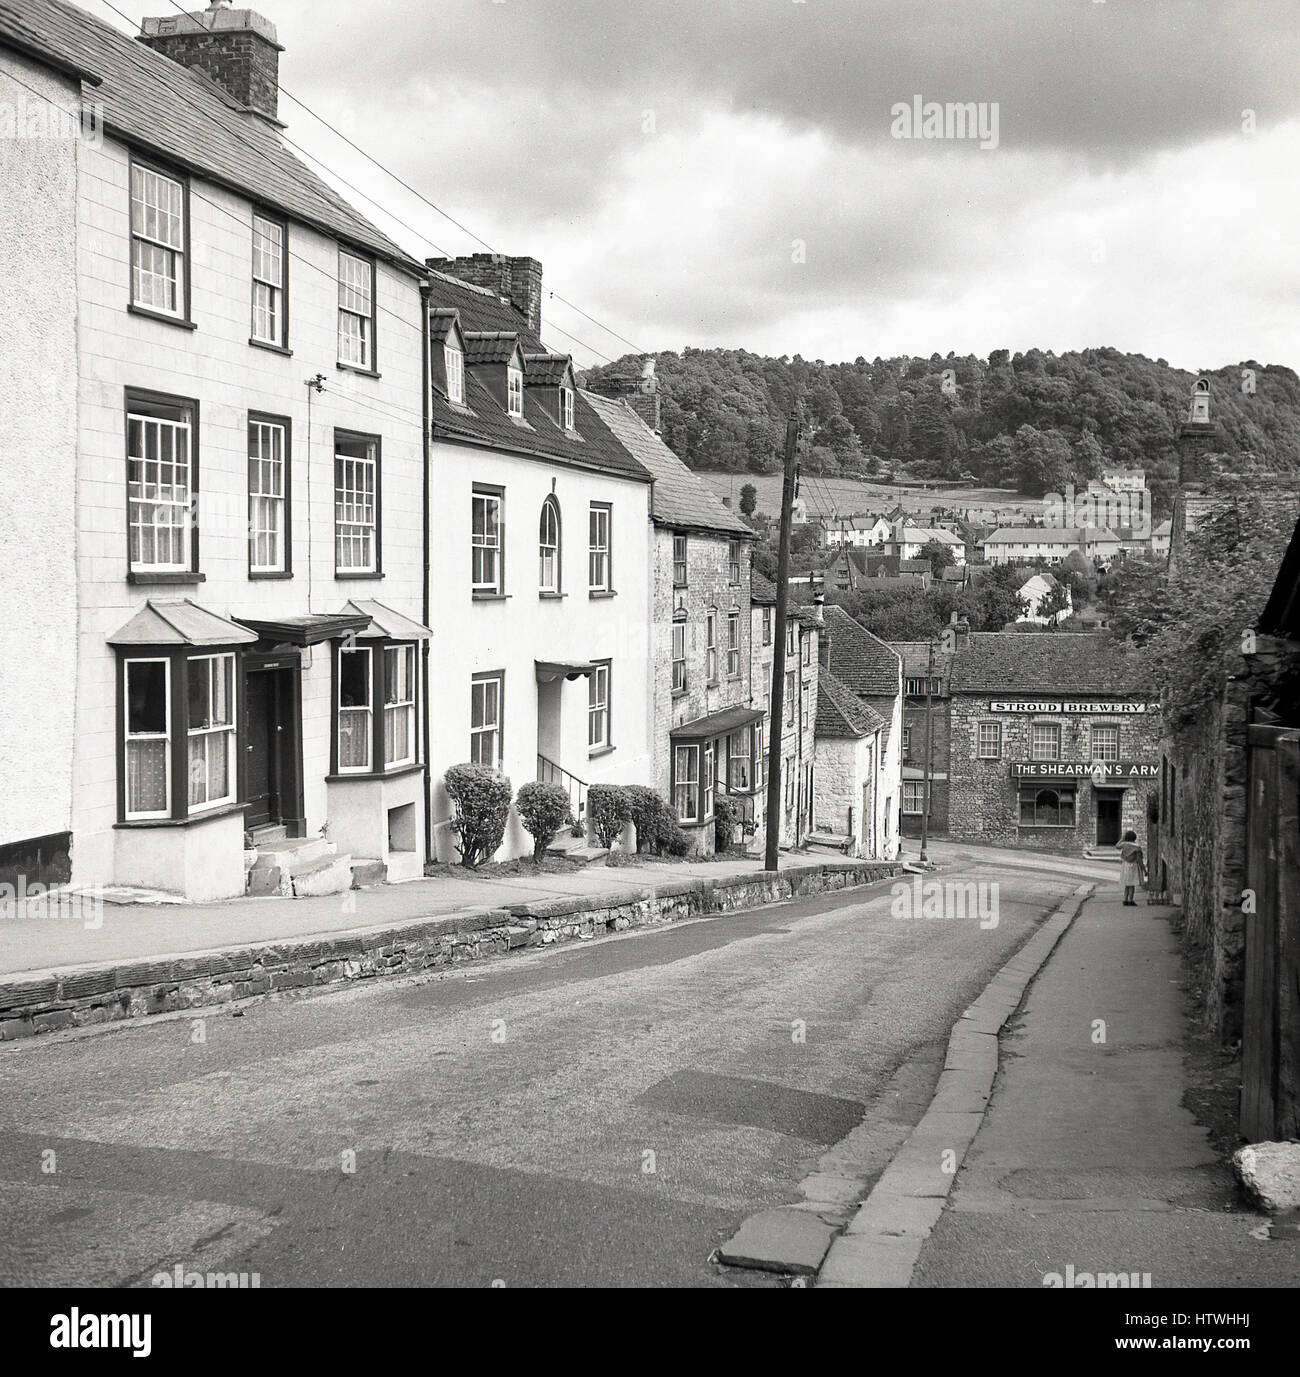 1940s, historical, The Shearman's Arms, Wotton-under-edge, Stroud, Gloucestershire, UK, - Stock Image